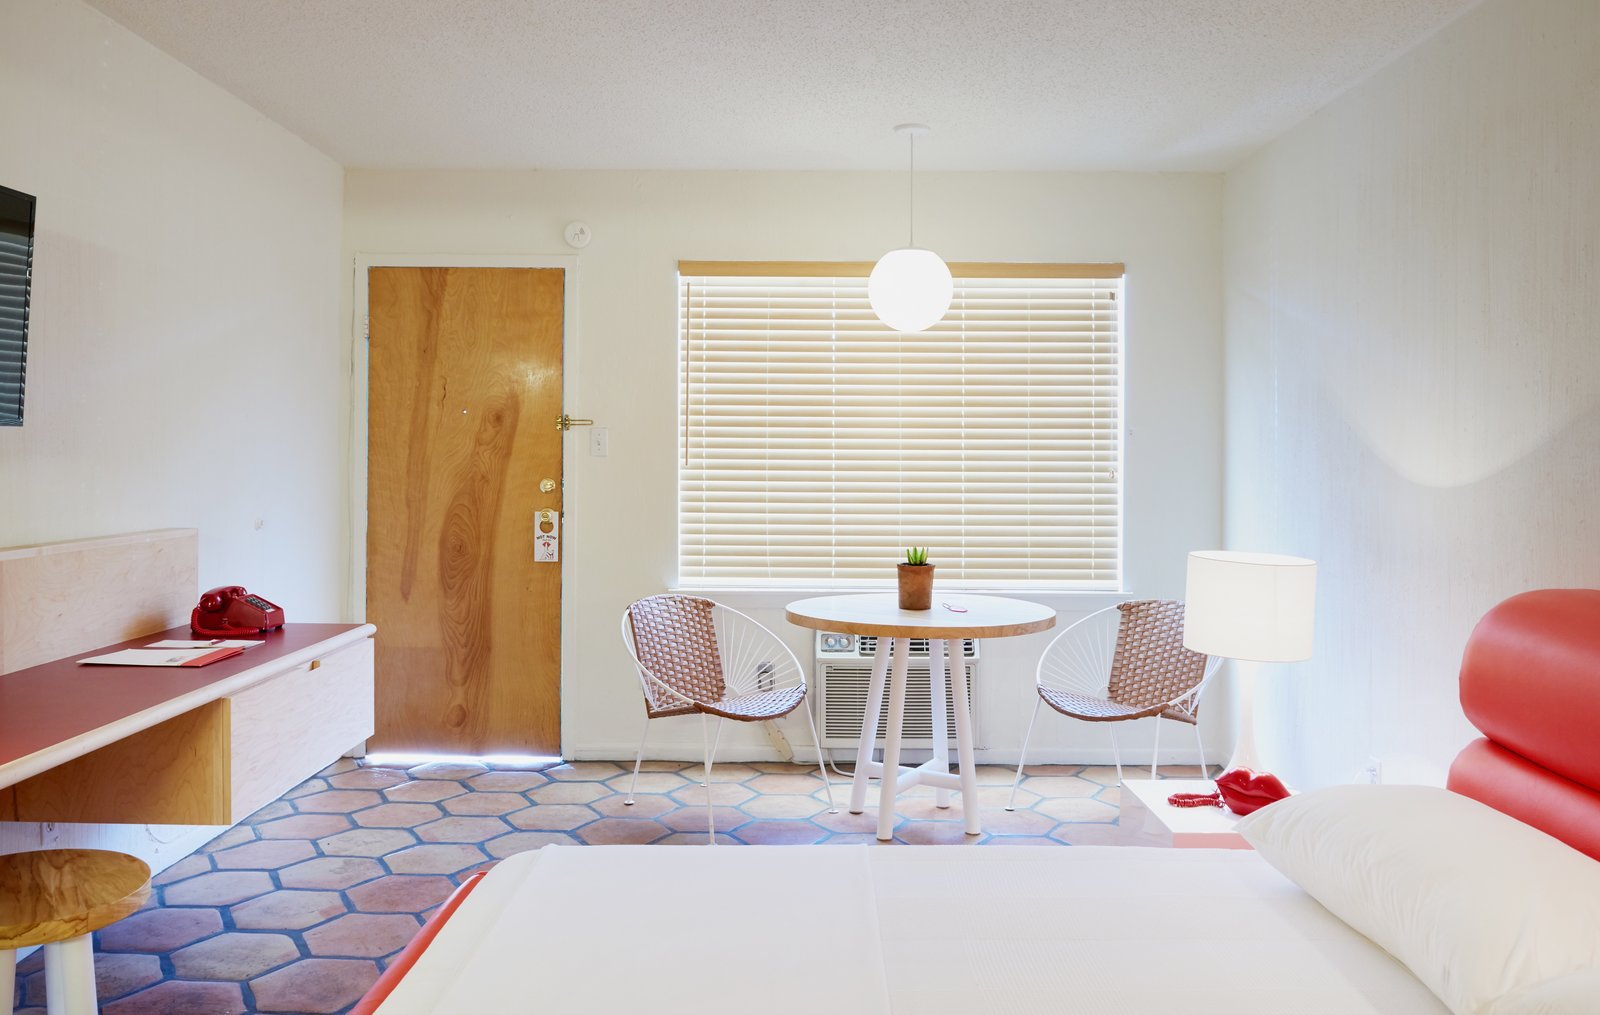 Bedroom, Night Stands, Pendant Lighting, Terra-cotta Tile Floor, Bed, Table Lighting, and Chair  Photo 6 of 13 in The Rejuvenated Austin Motel Welcomes Guests With Upbeat, Midcentury-Modern Vibes